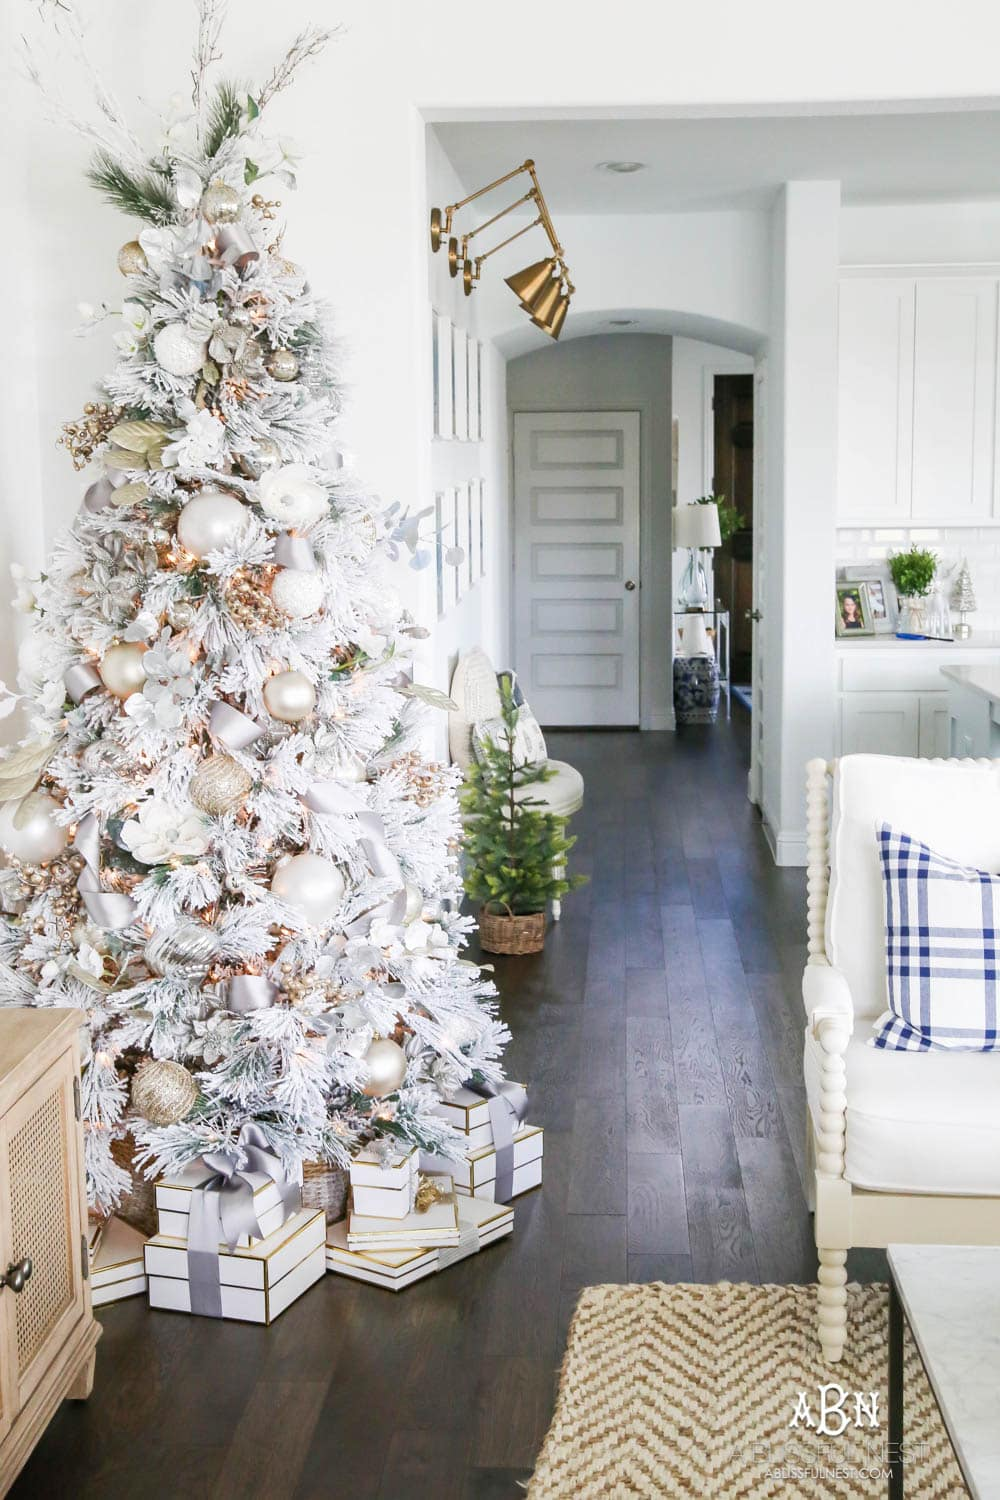 Silver and gold Christmas tree in an open concept floor plan with lots of blue home decor accents. Check out all the white, silver and gold Christmas decor in this holiday home tour on ABlissfulNest.com. #ABlissfulNest #Christmasdecor #Christmasdecorating #CoastalChristmasdecor